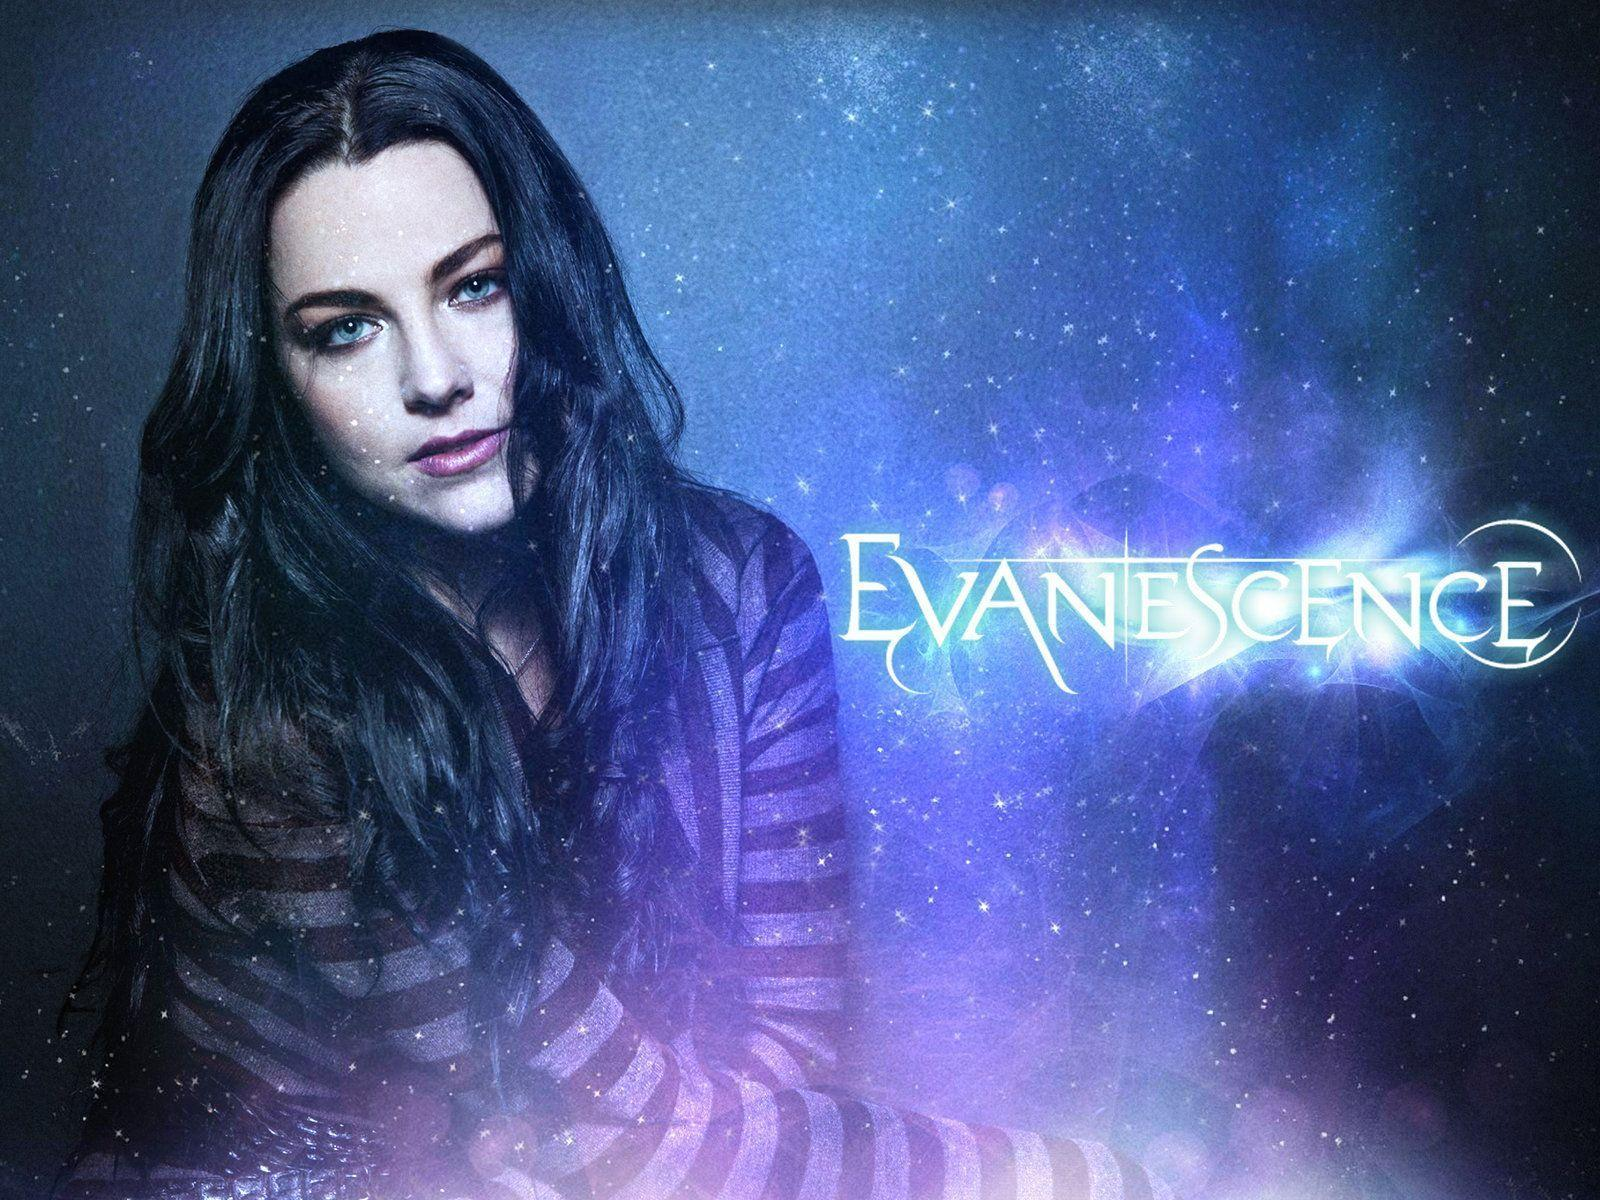 Evanescence Wallpapers 1600x1200